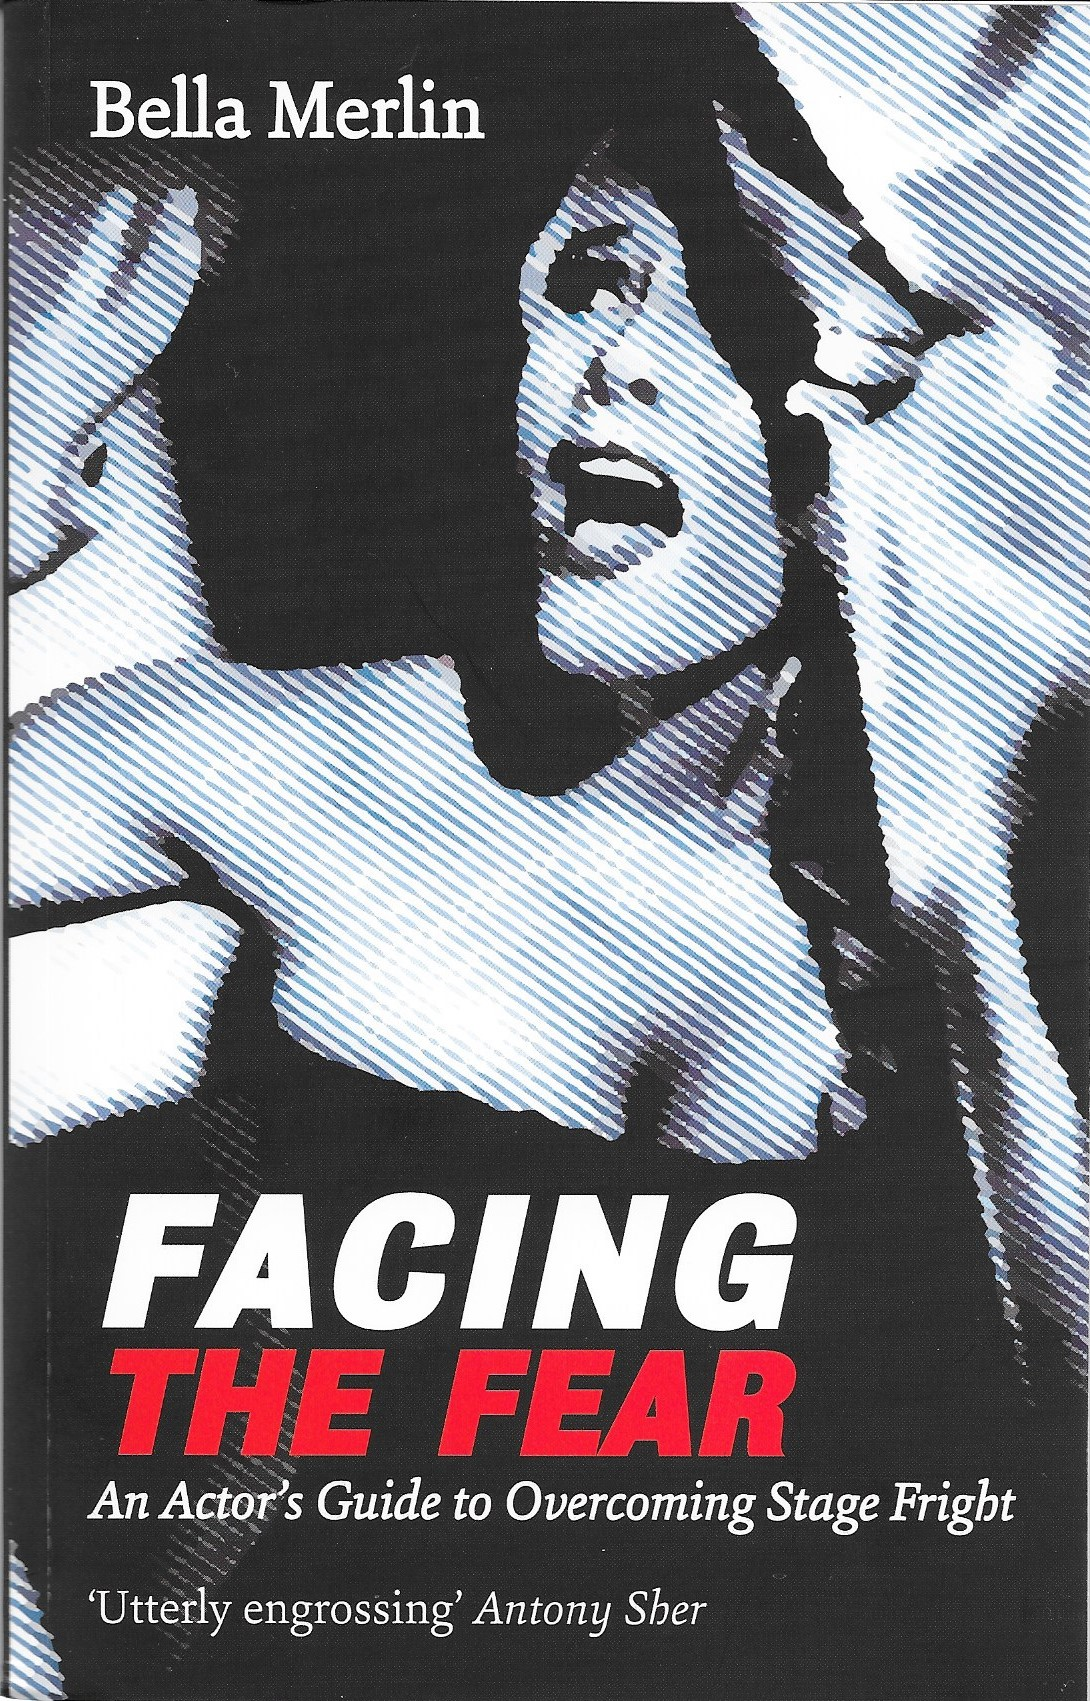 Book Review: Facing the Fear – an actor's guide to overcoming stage fright